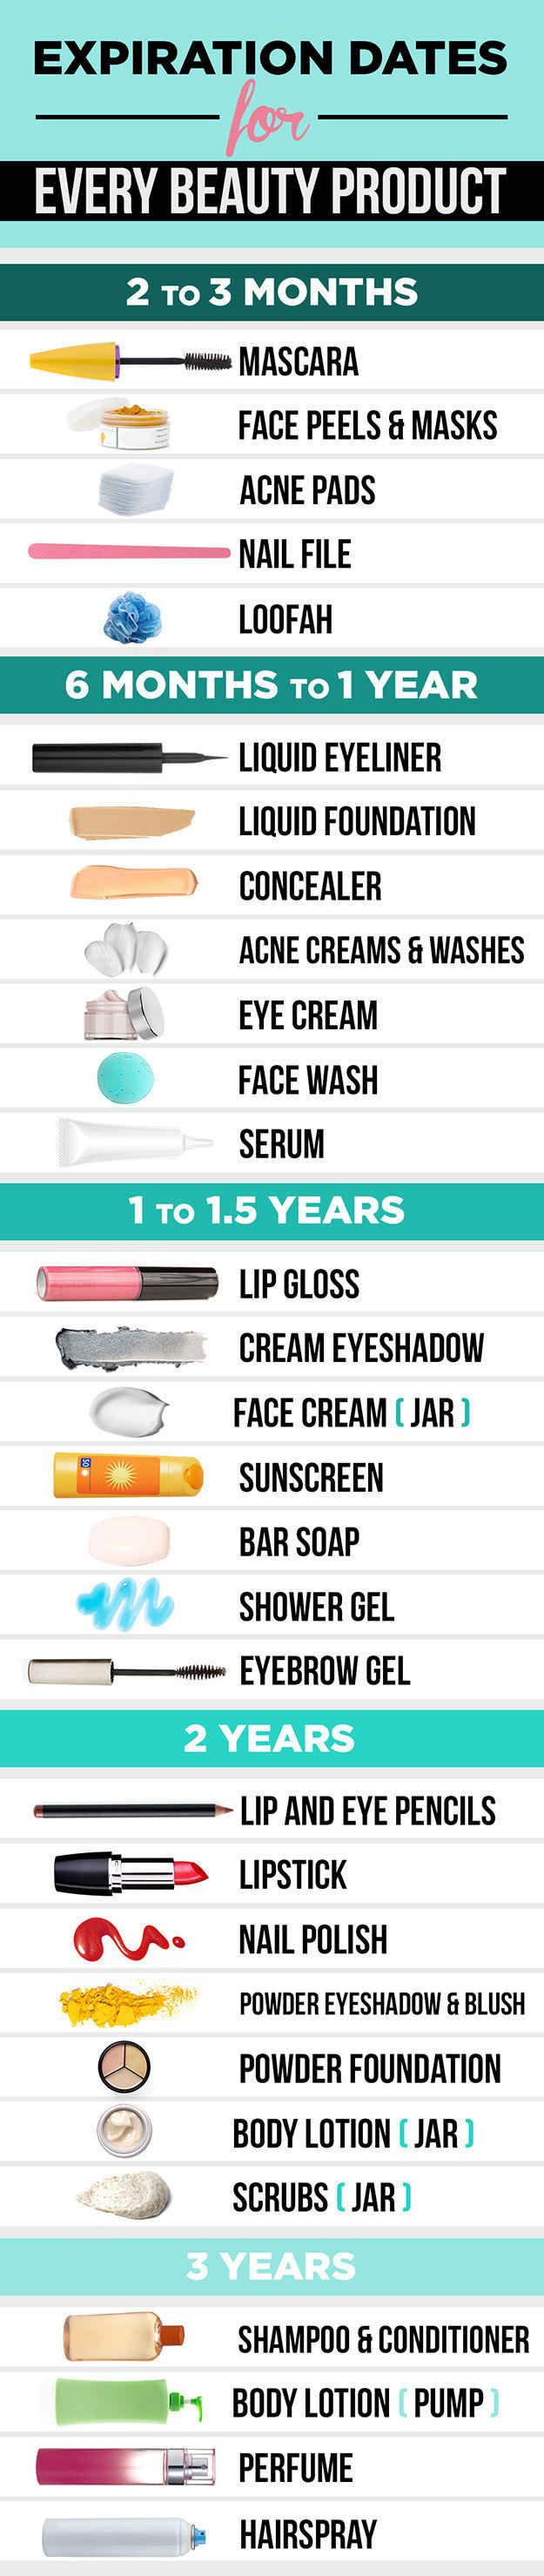 18 Genius Tricks To Get Every Last Drop Out Of Your Makeup